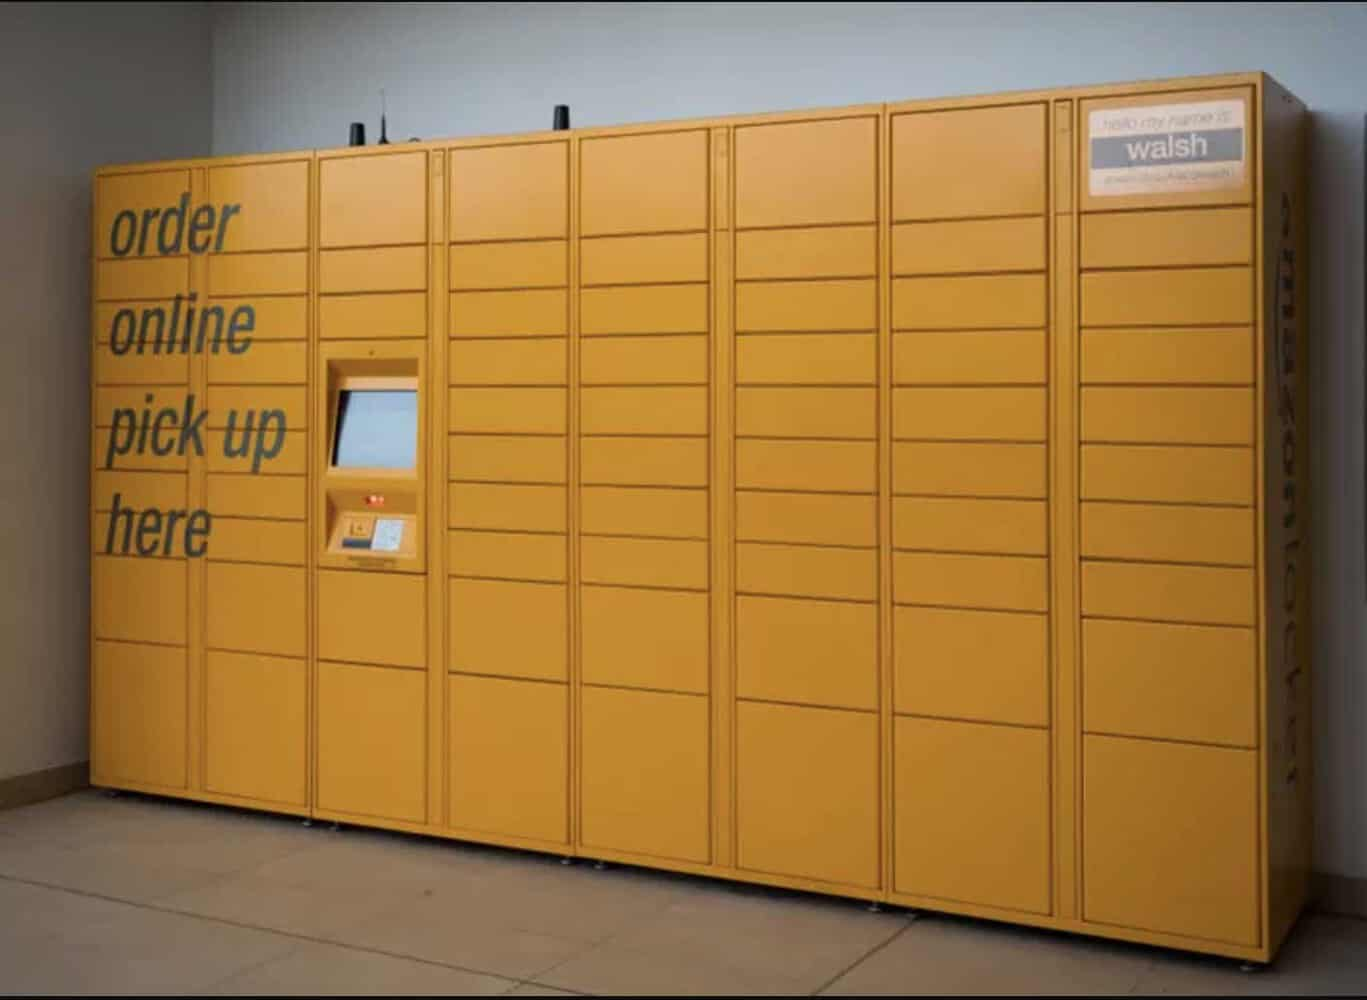 amazon locker located in a store